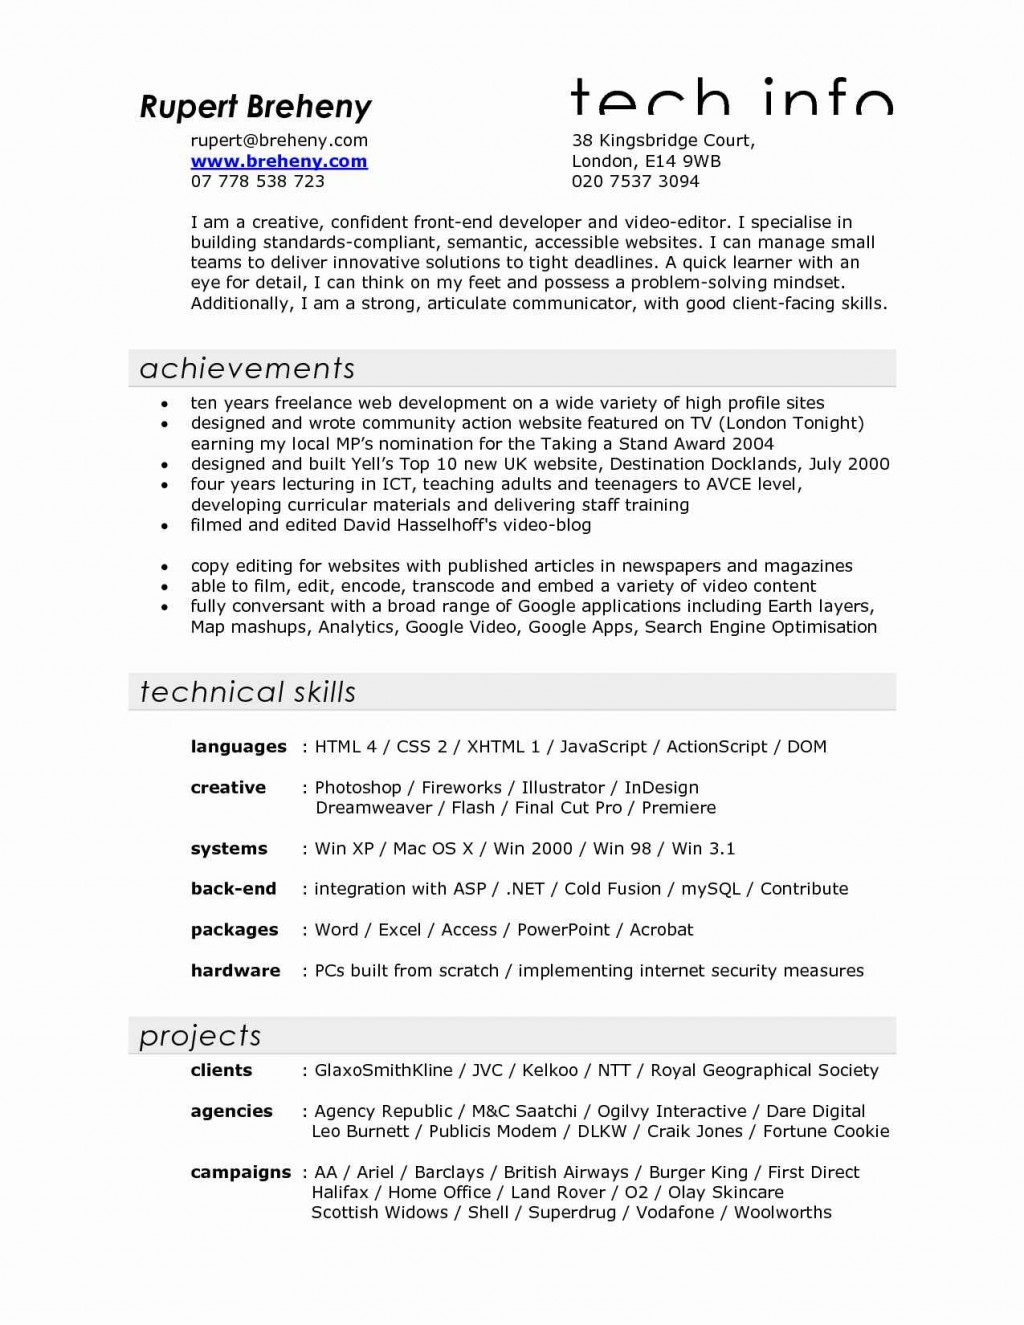 011 Film Director Resume Template Inspirational Gre Awa Analytical Essays For Writing Issue Essay Sample S Breathtaking In Hindi About Life And Struggles Fathers Large